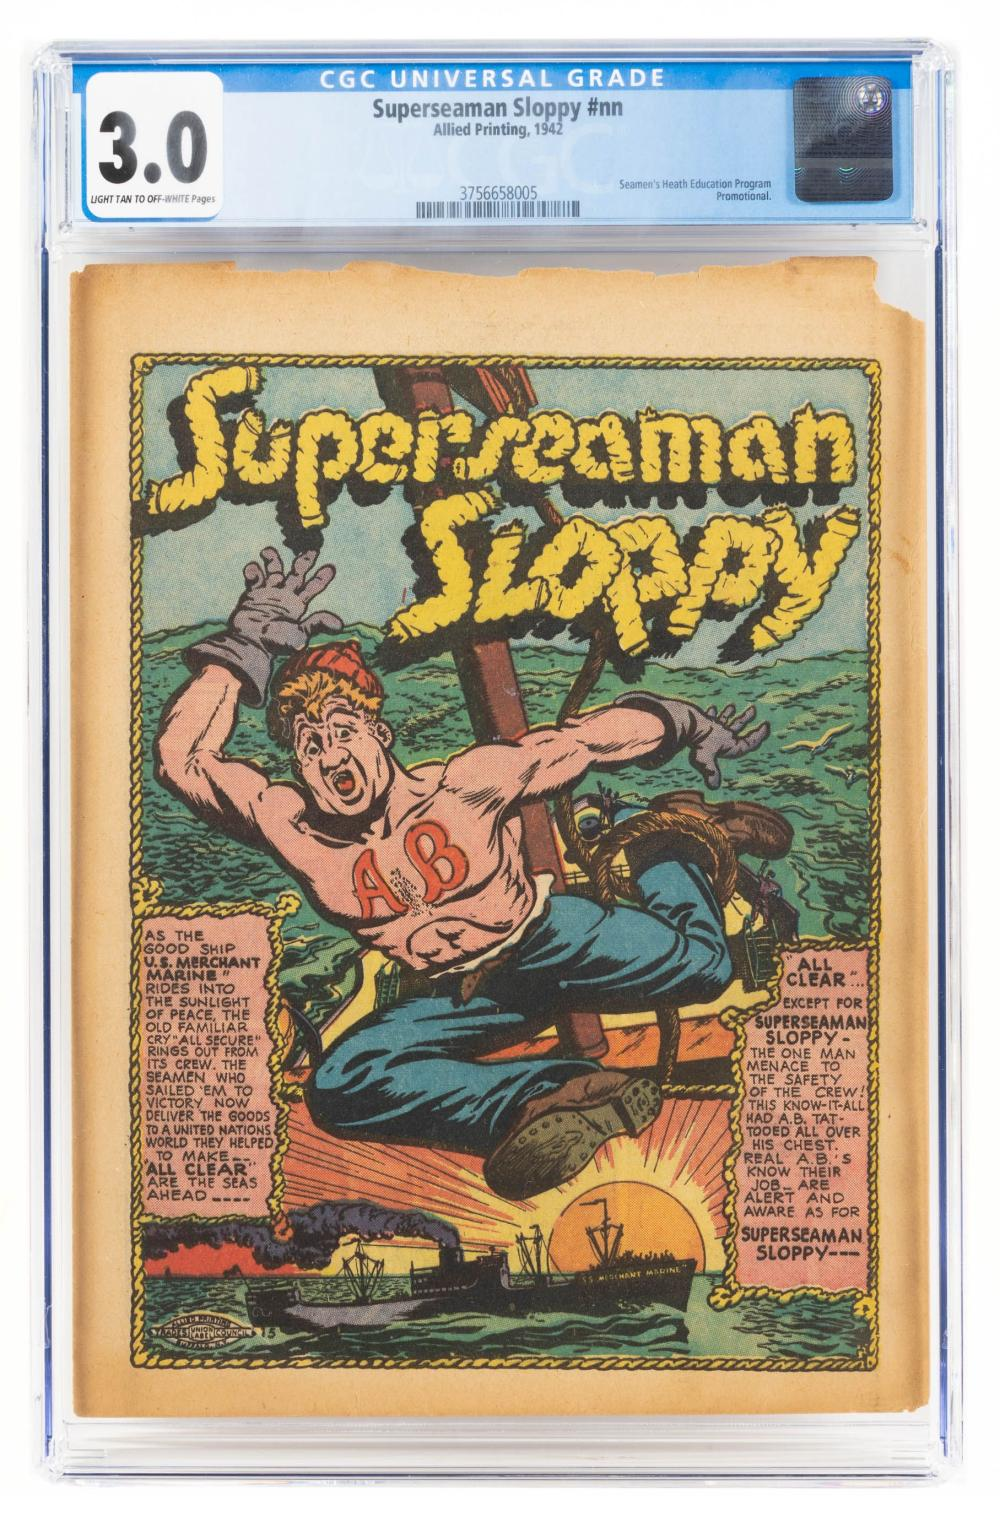 SUPERSEAMAN SLOPPY * CGC 3.0 * Rare 1942 Giveaway w/ Kind of Gross Name